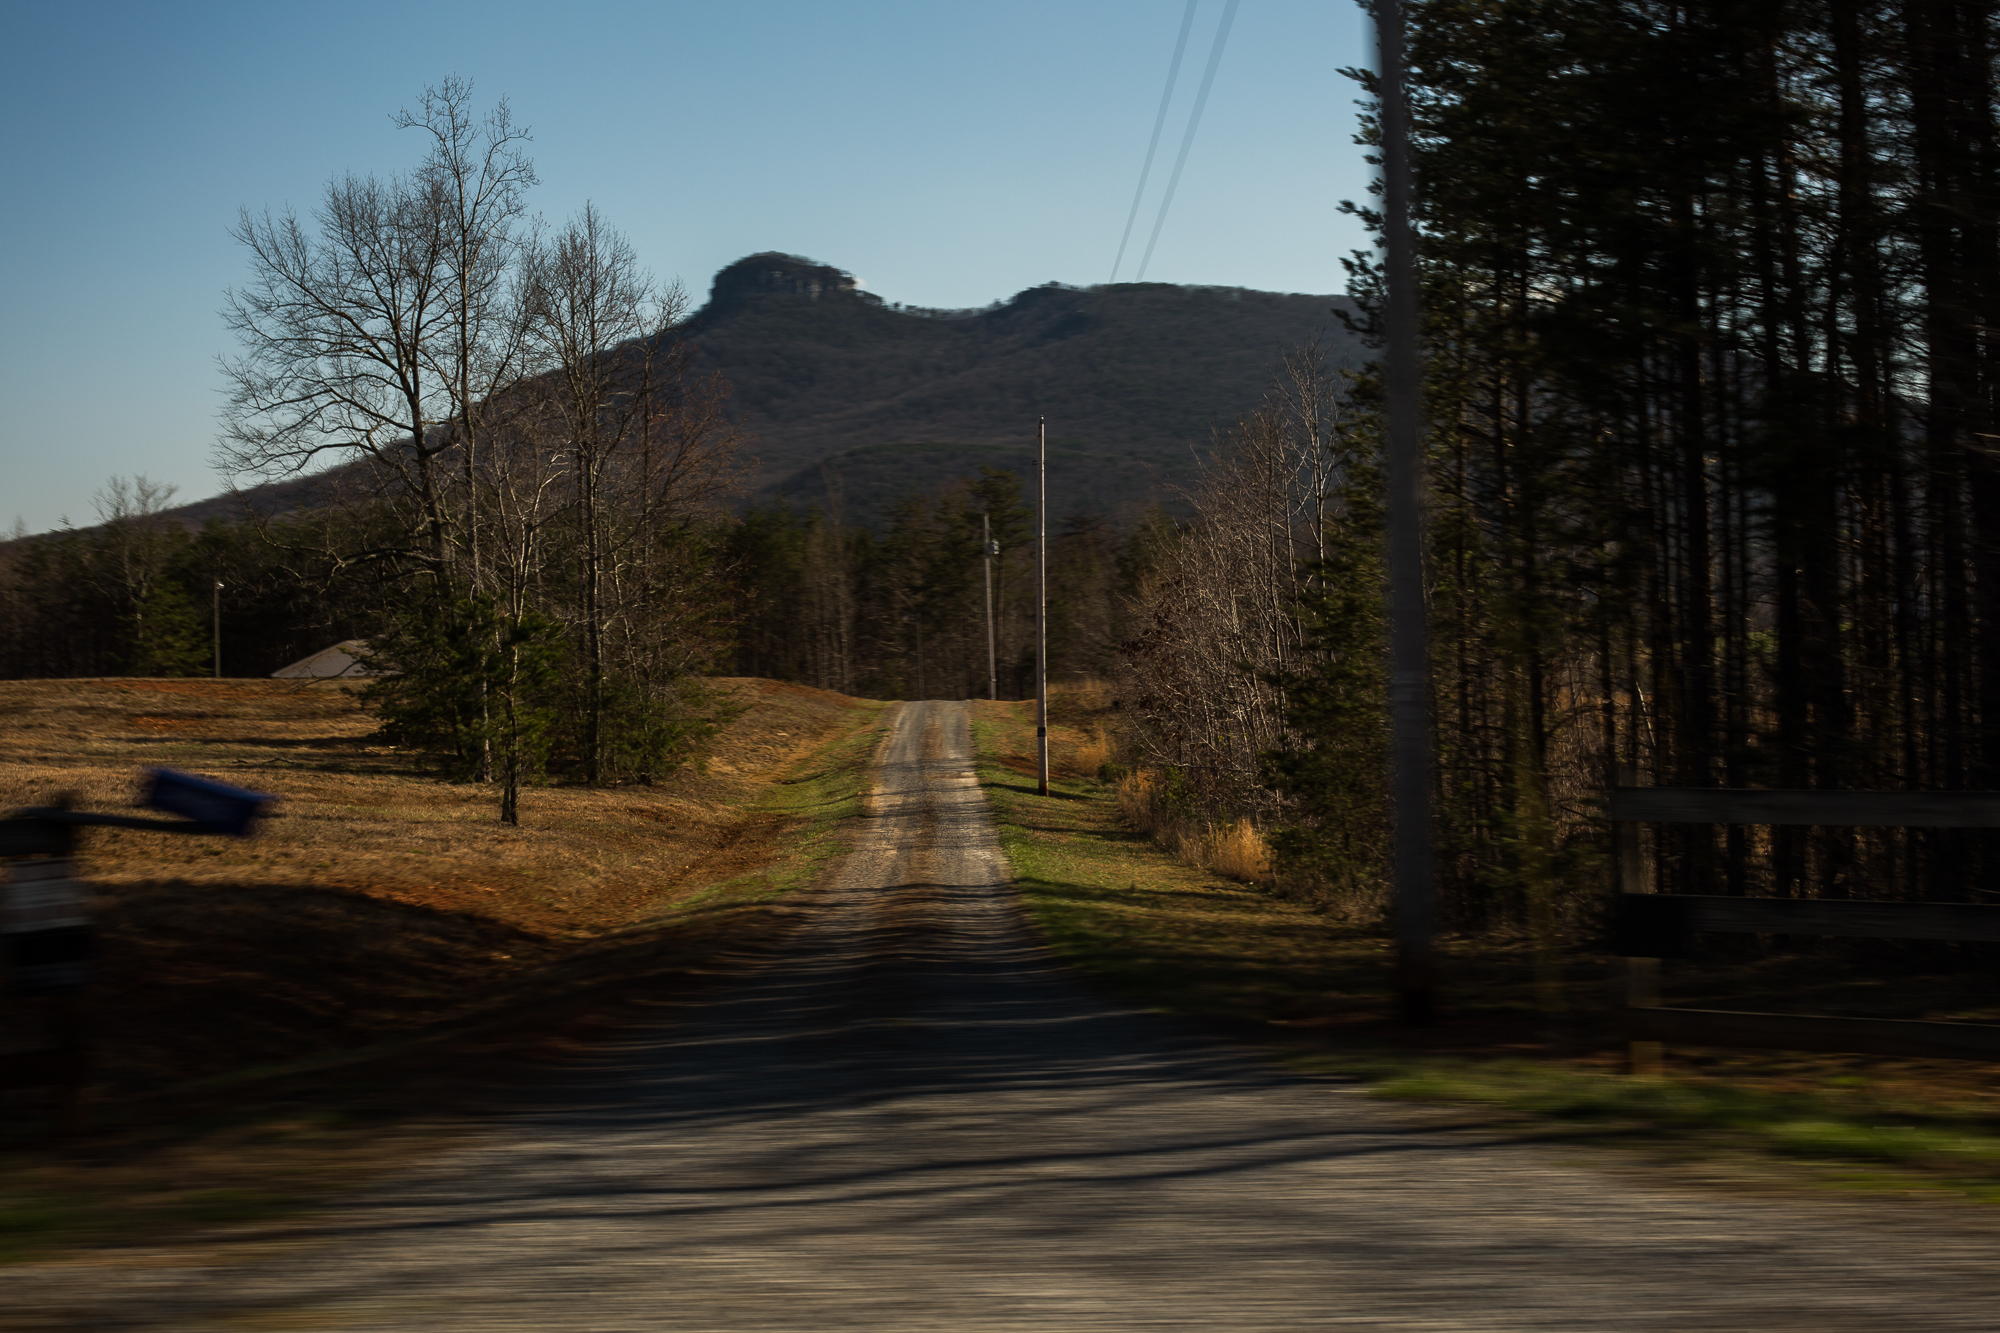 Pilot Mountain overlooks Mount Airy and Dobson, N.C. in rural Surry County.